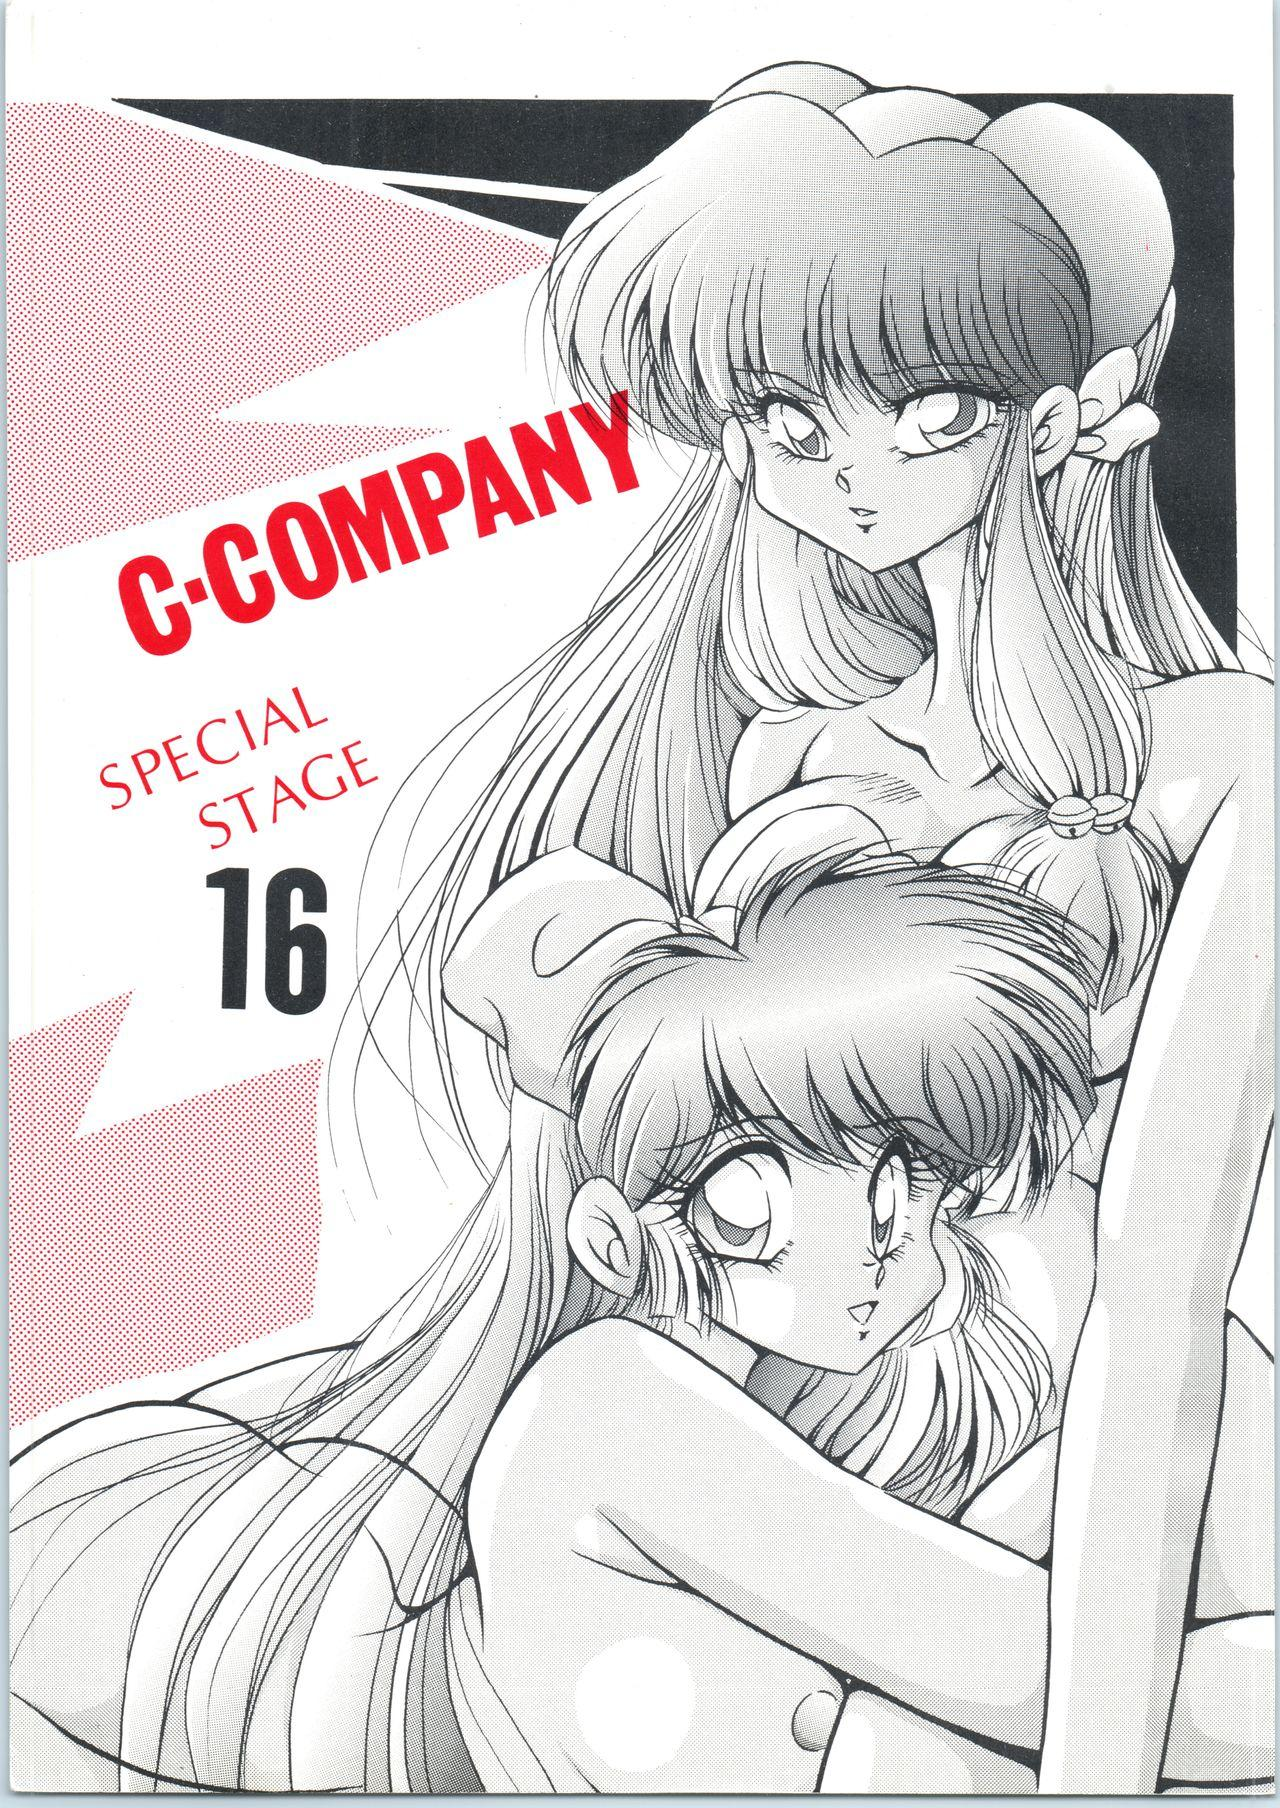 C-COMPANY SPECIAL STAGE 16 0